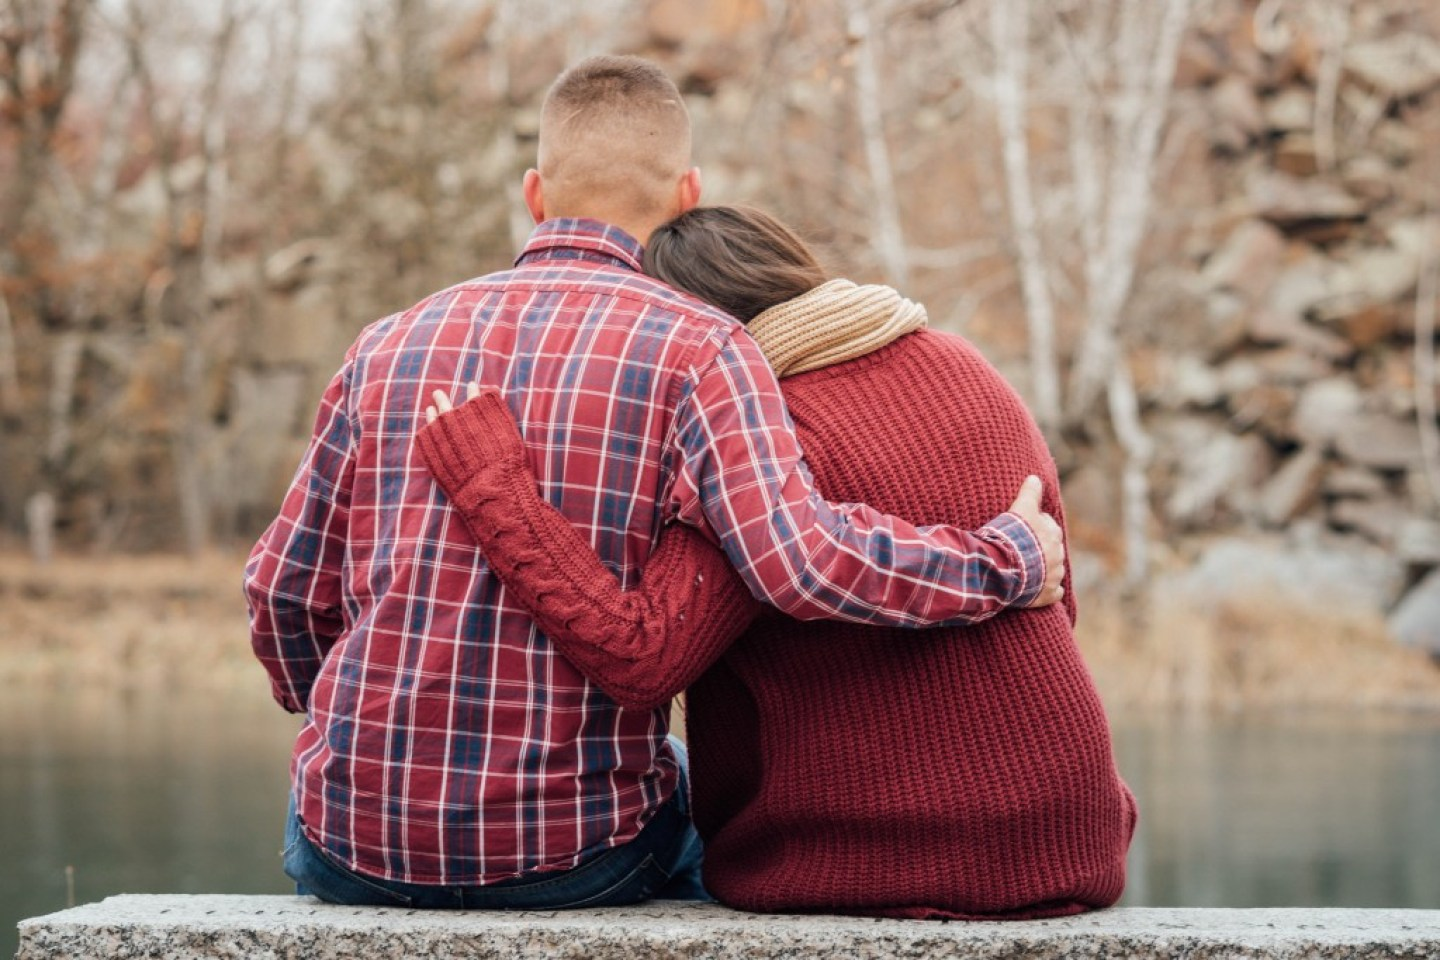 man plaid shirt and woman in jumper  hugging